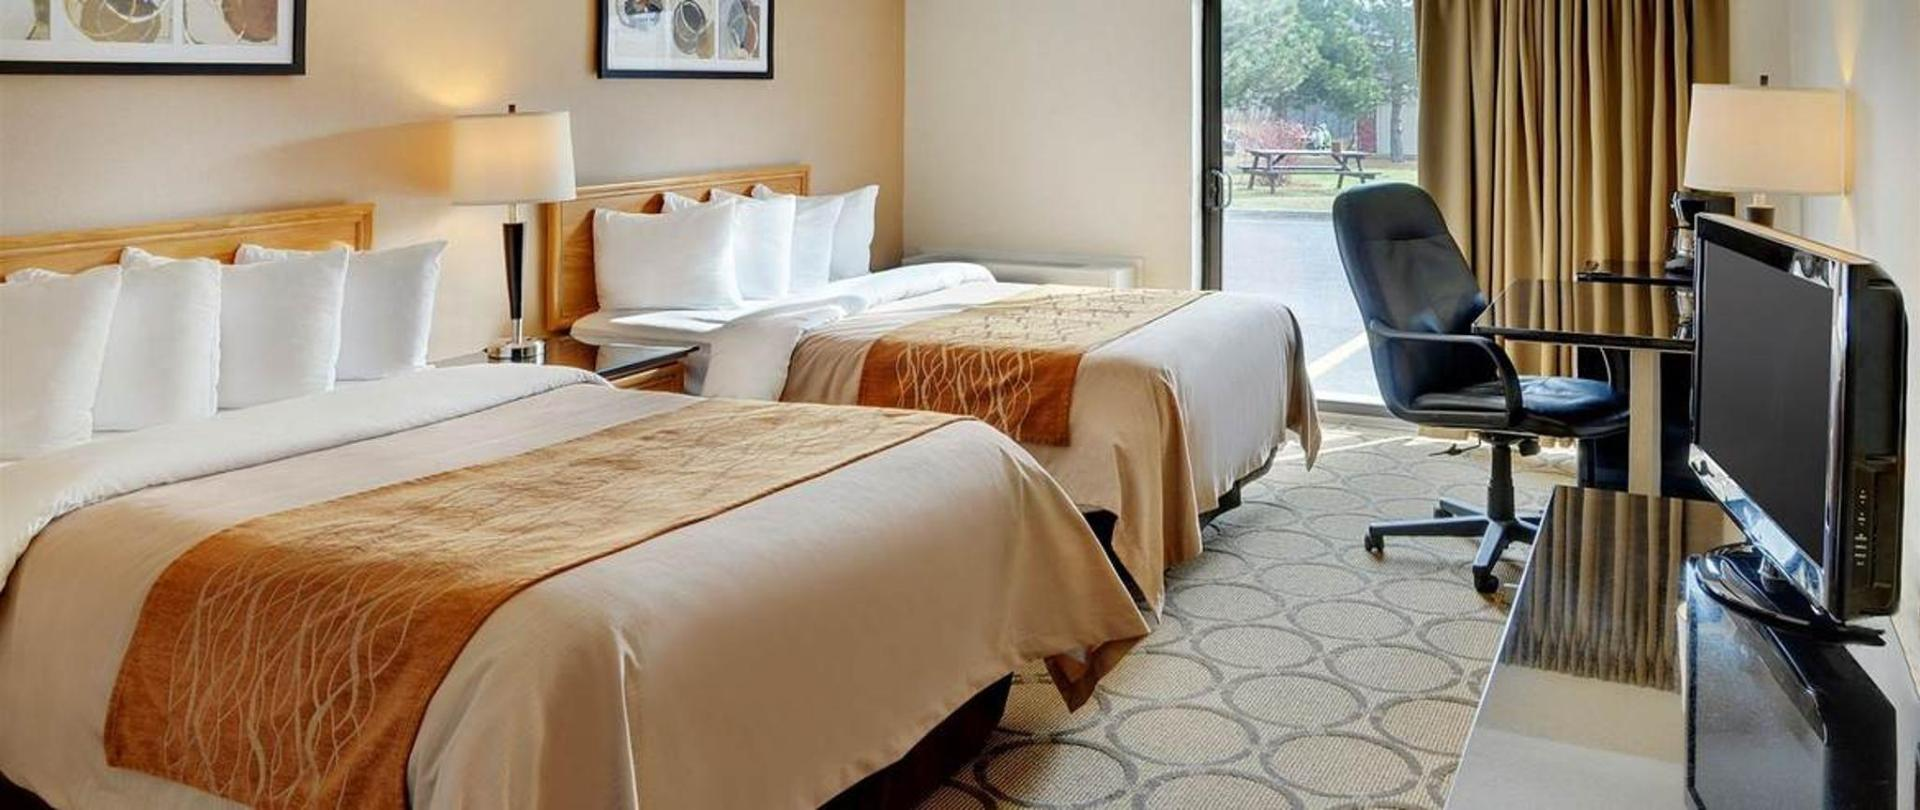 drive-up-two-pillowtop-beds.jpg.1170x493_default.jpg